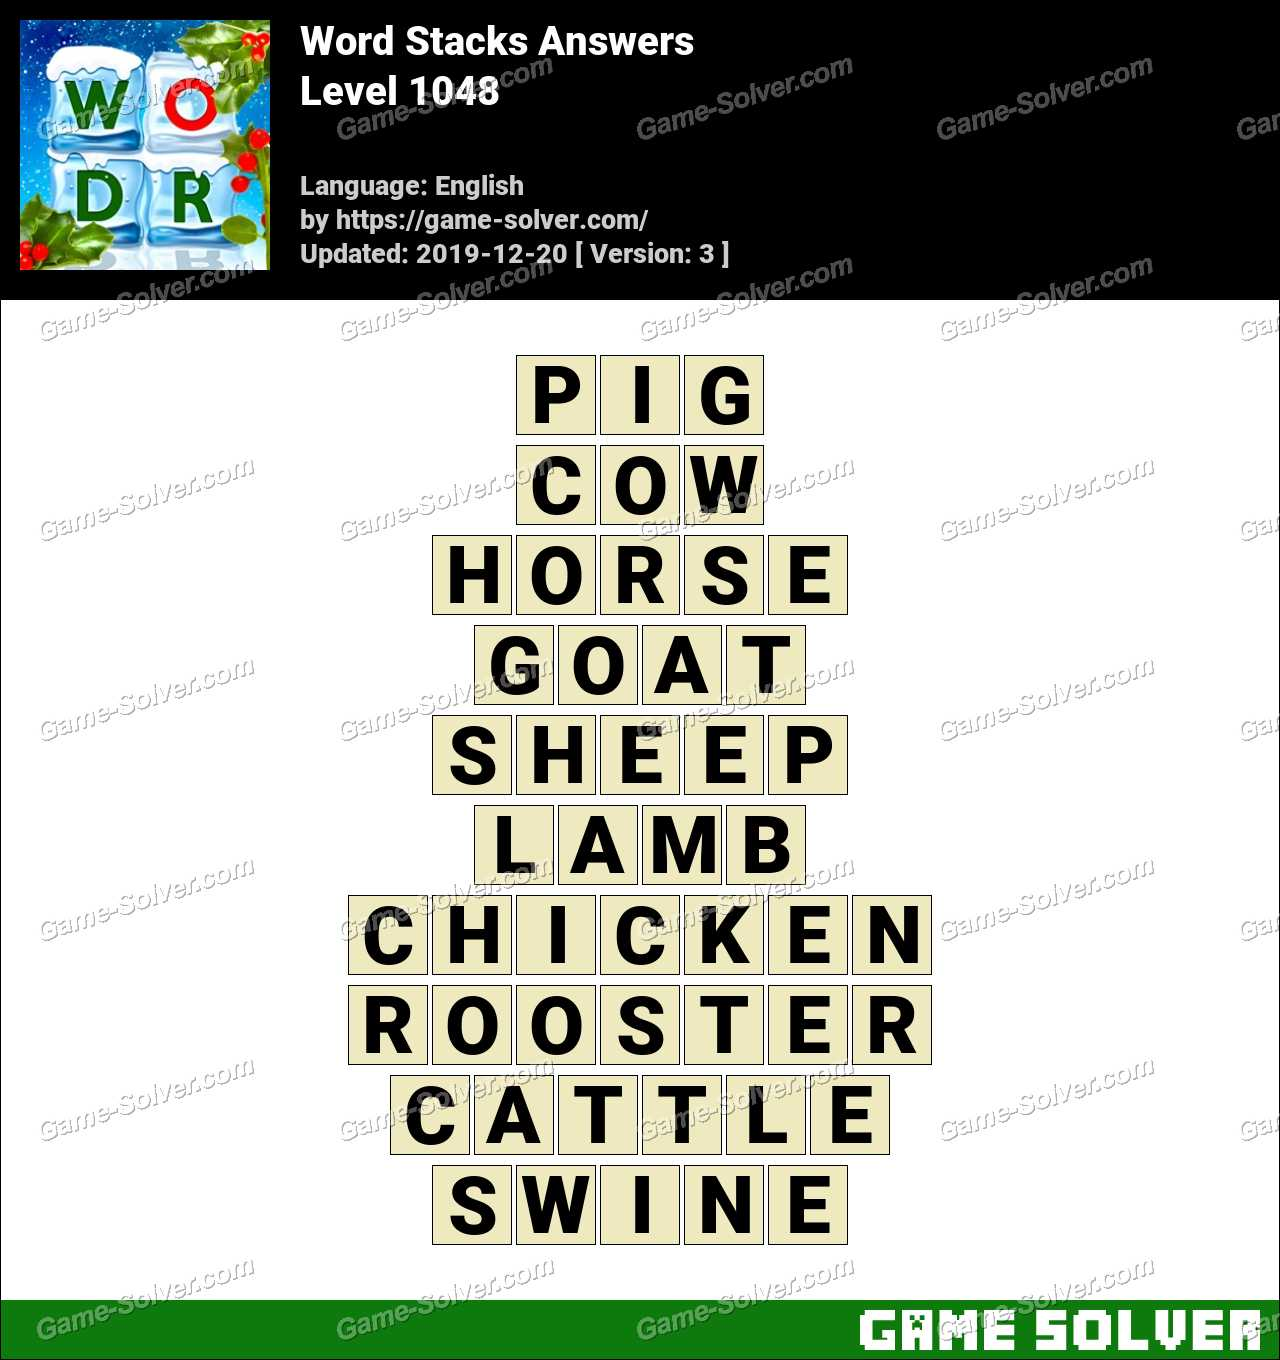 Word Stacks Level 1048 Answers